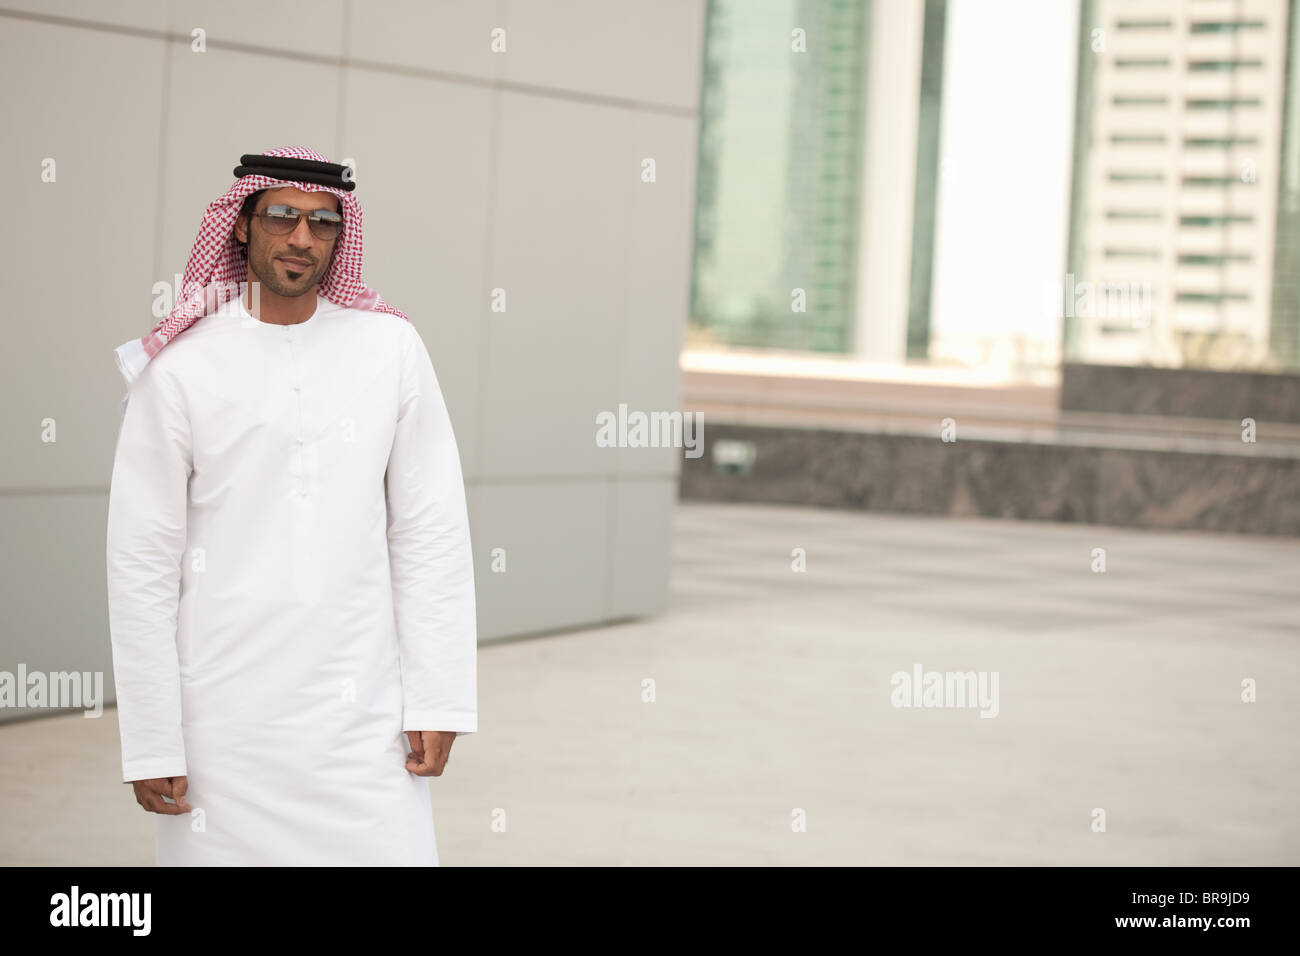 Middle eastern man in city - Stock Image